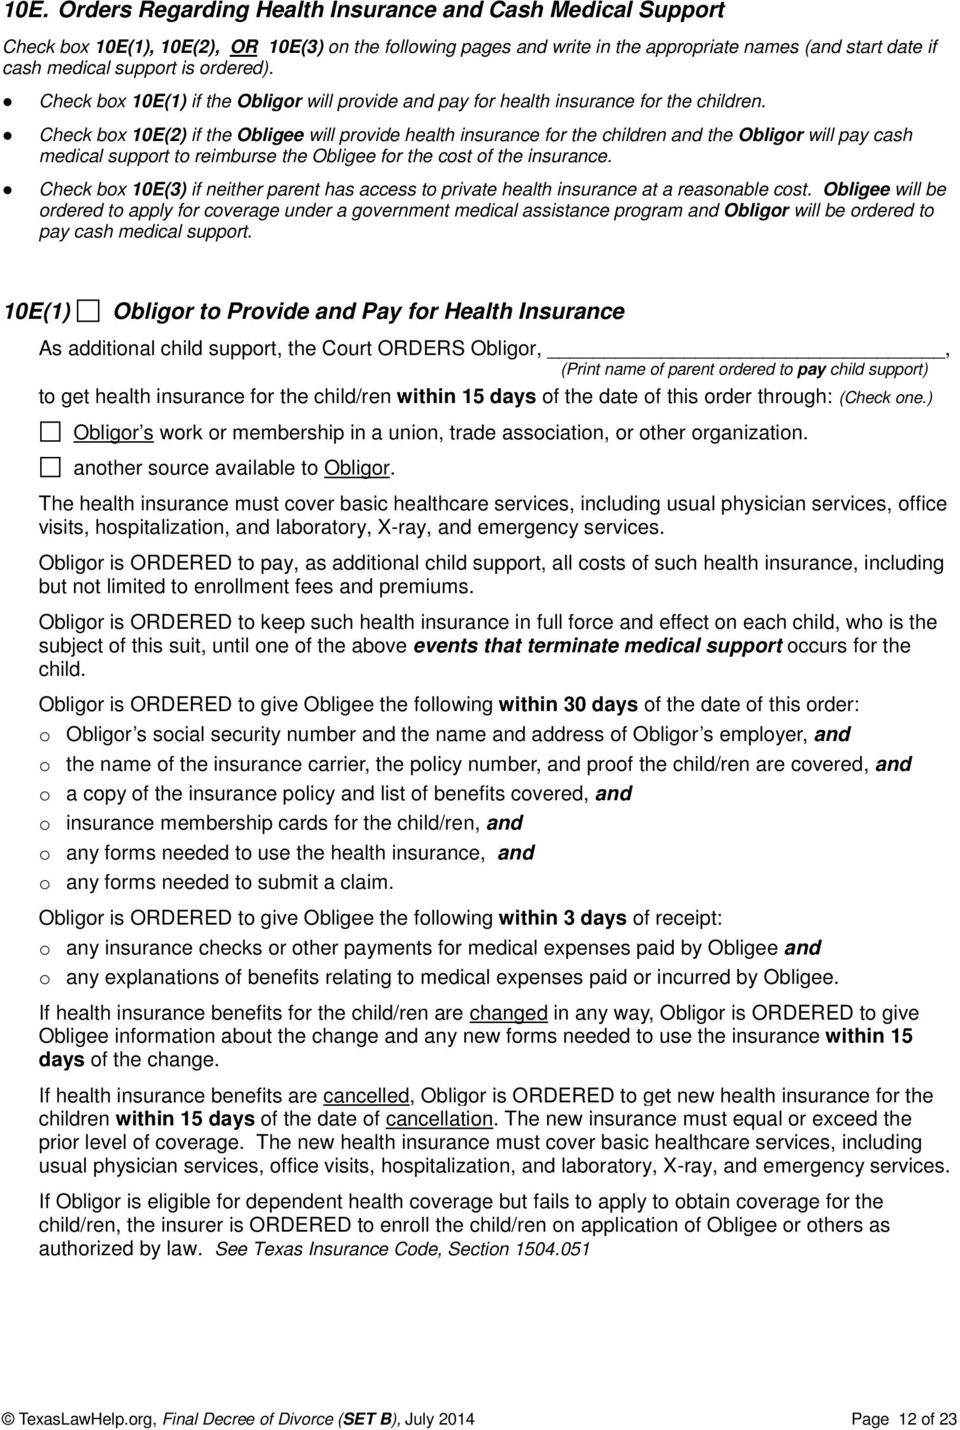 Check box 10E(2) if the Obligee will provide health insurance for the children and the Obligor will pay cash medical support to reimburse the Obligee for the cost of the insurance.